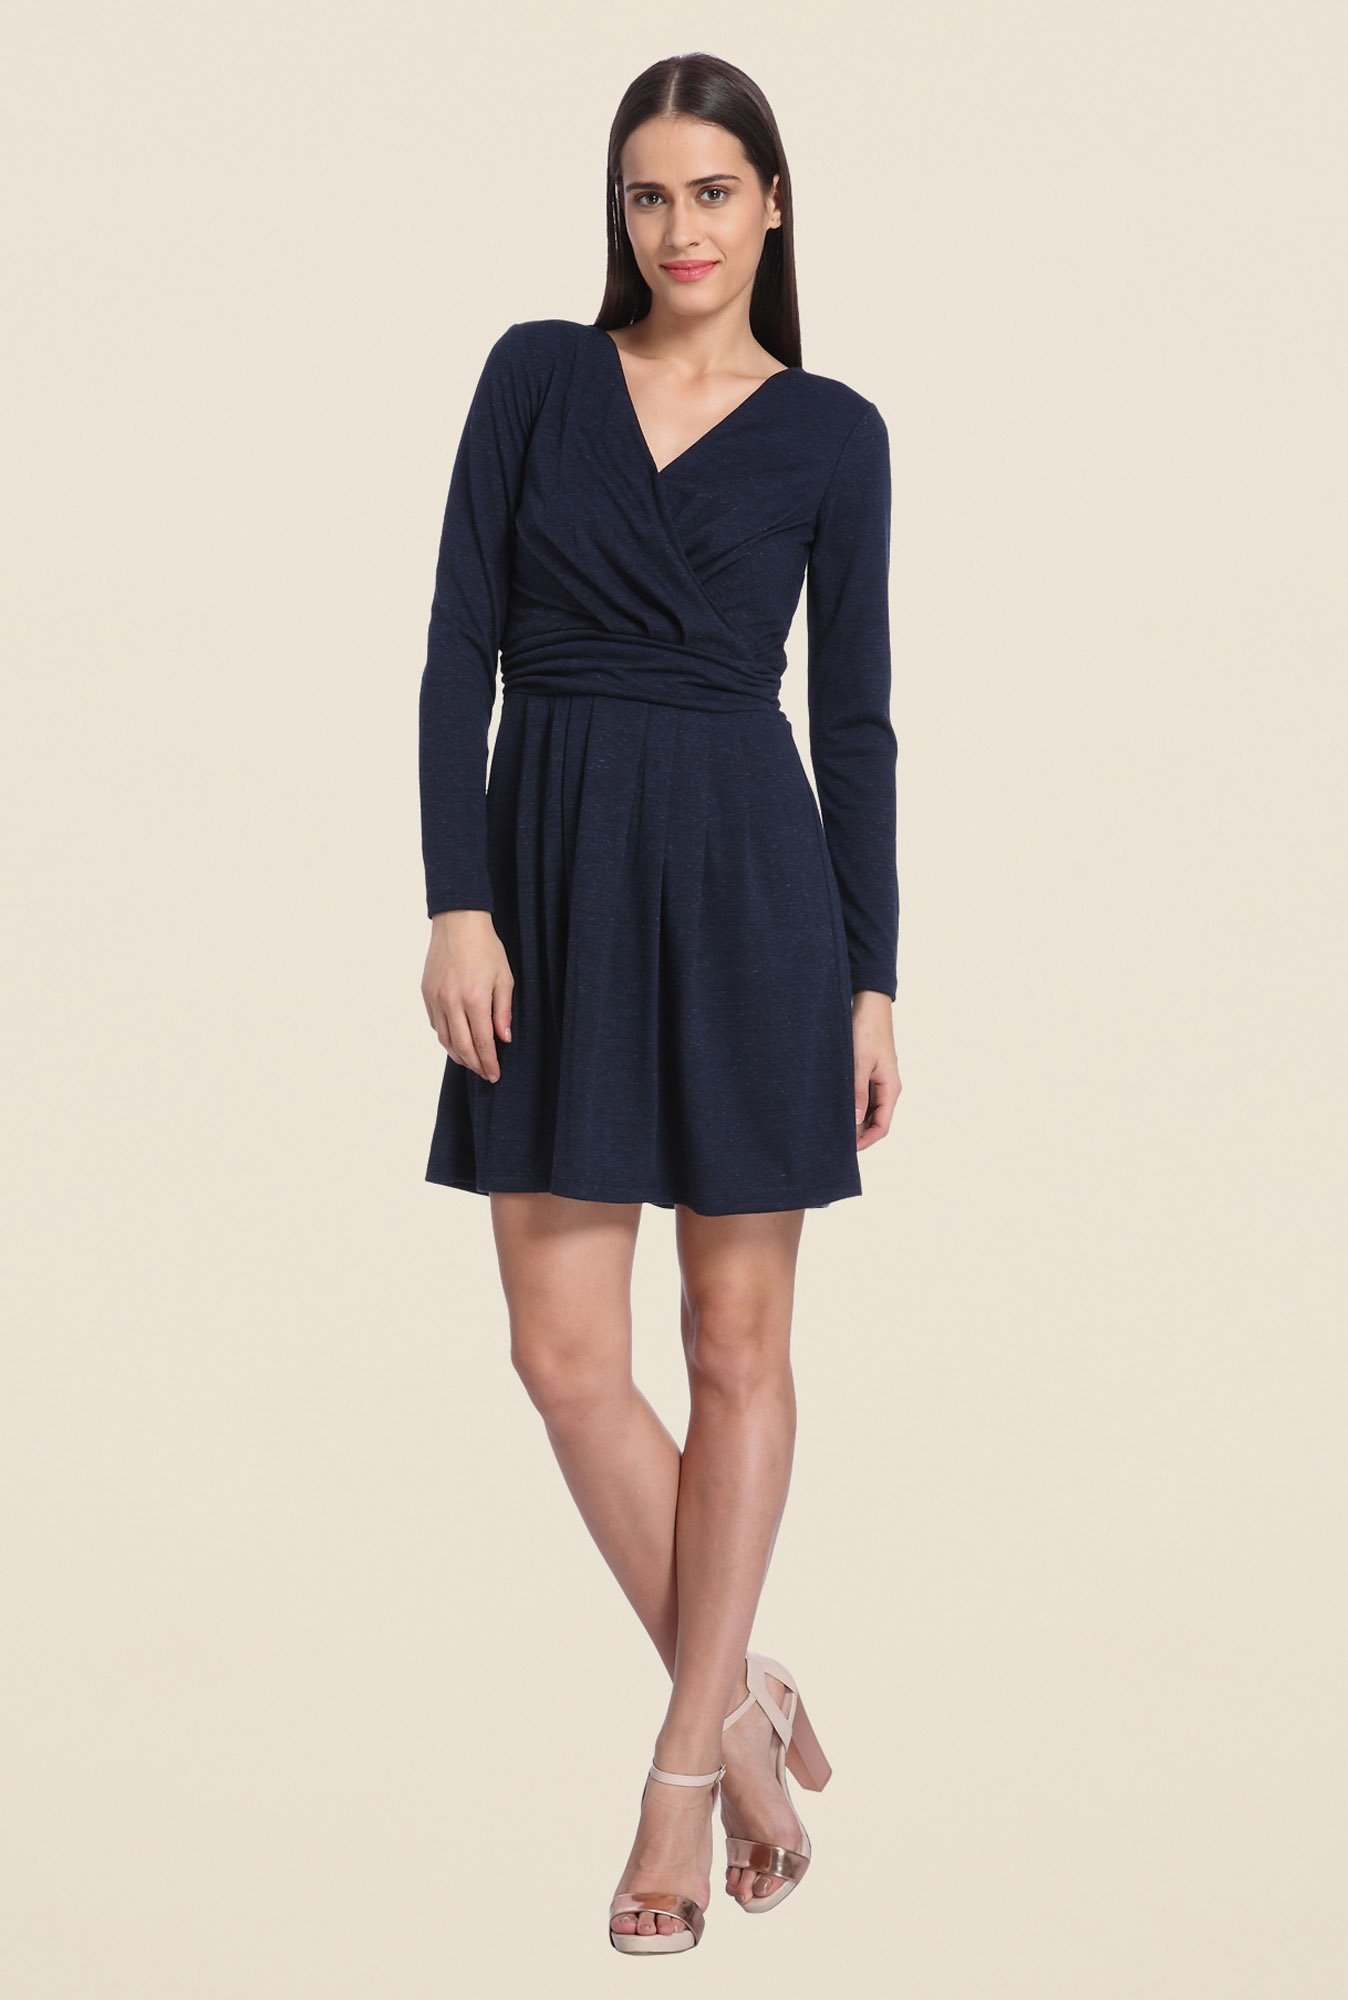 Vero Moda Navy Skater Dress